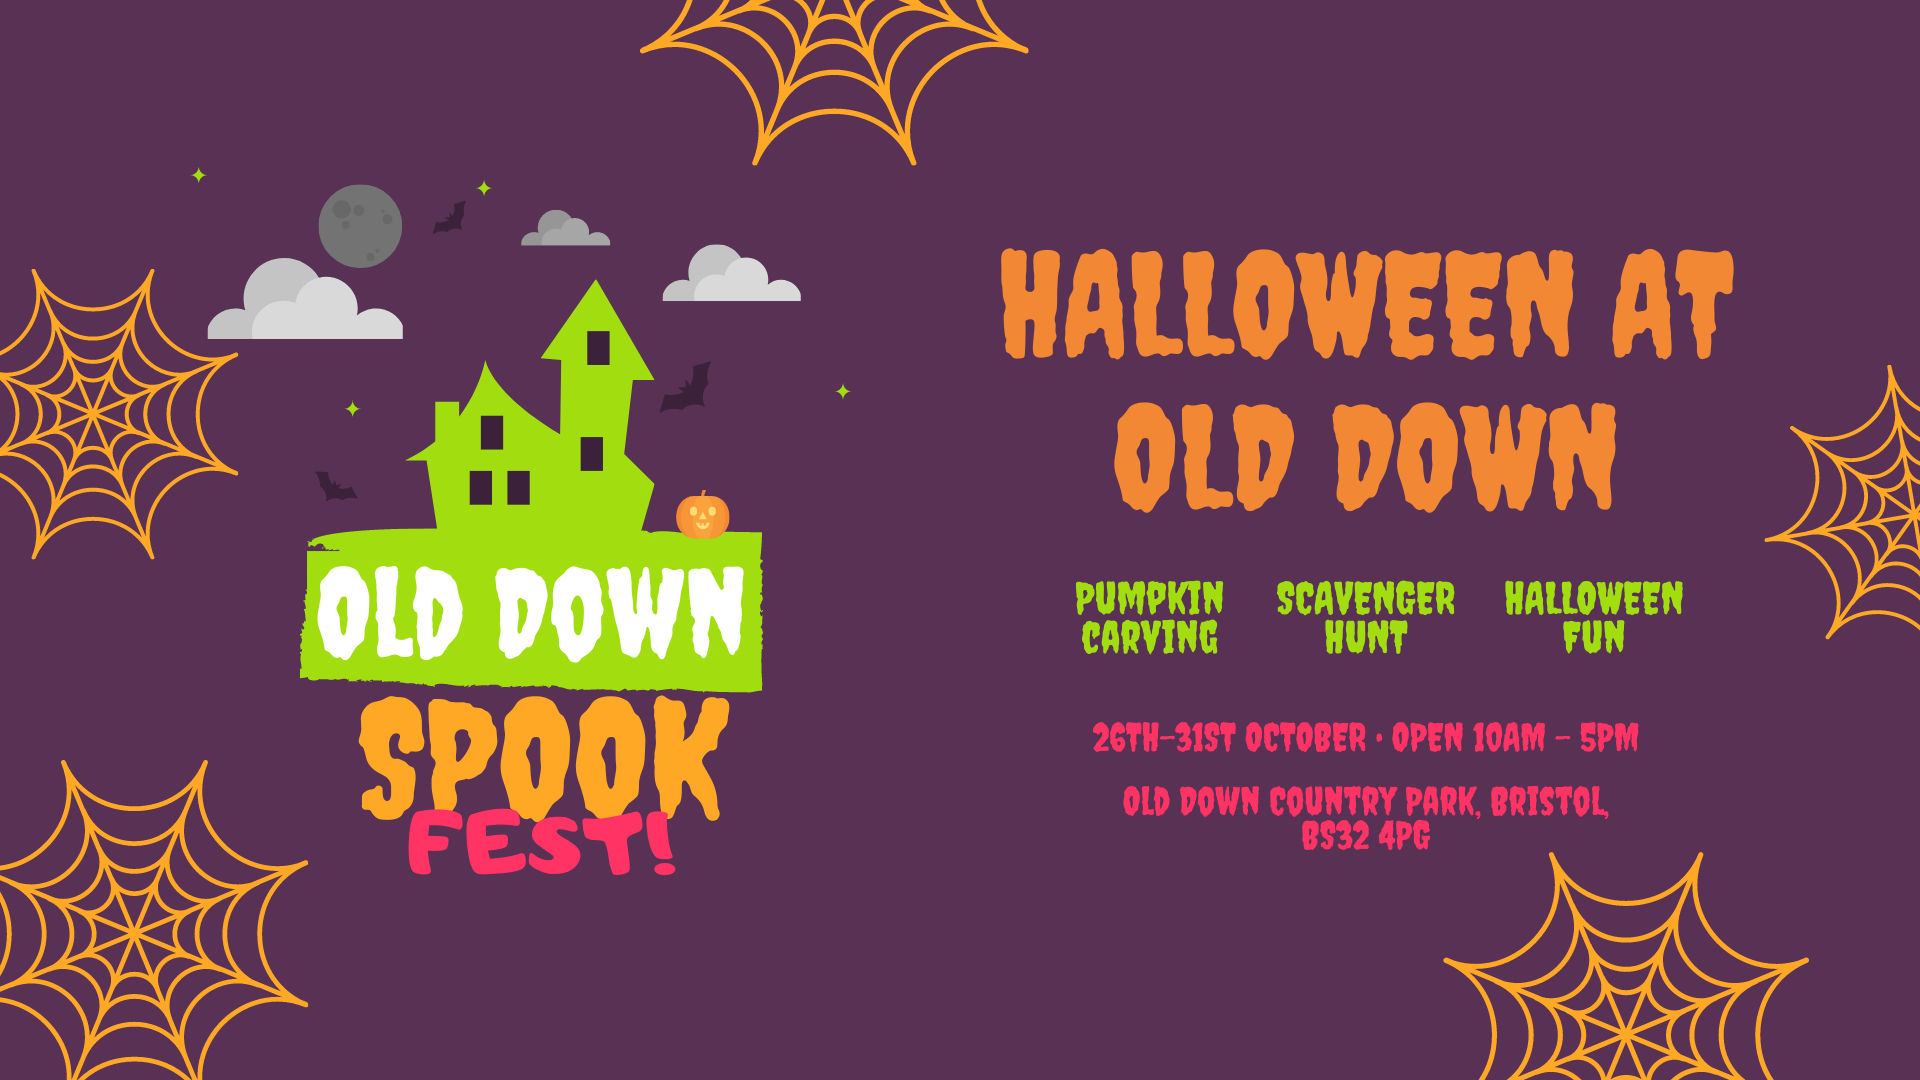 Old Down Spook Fest